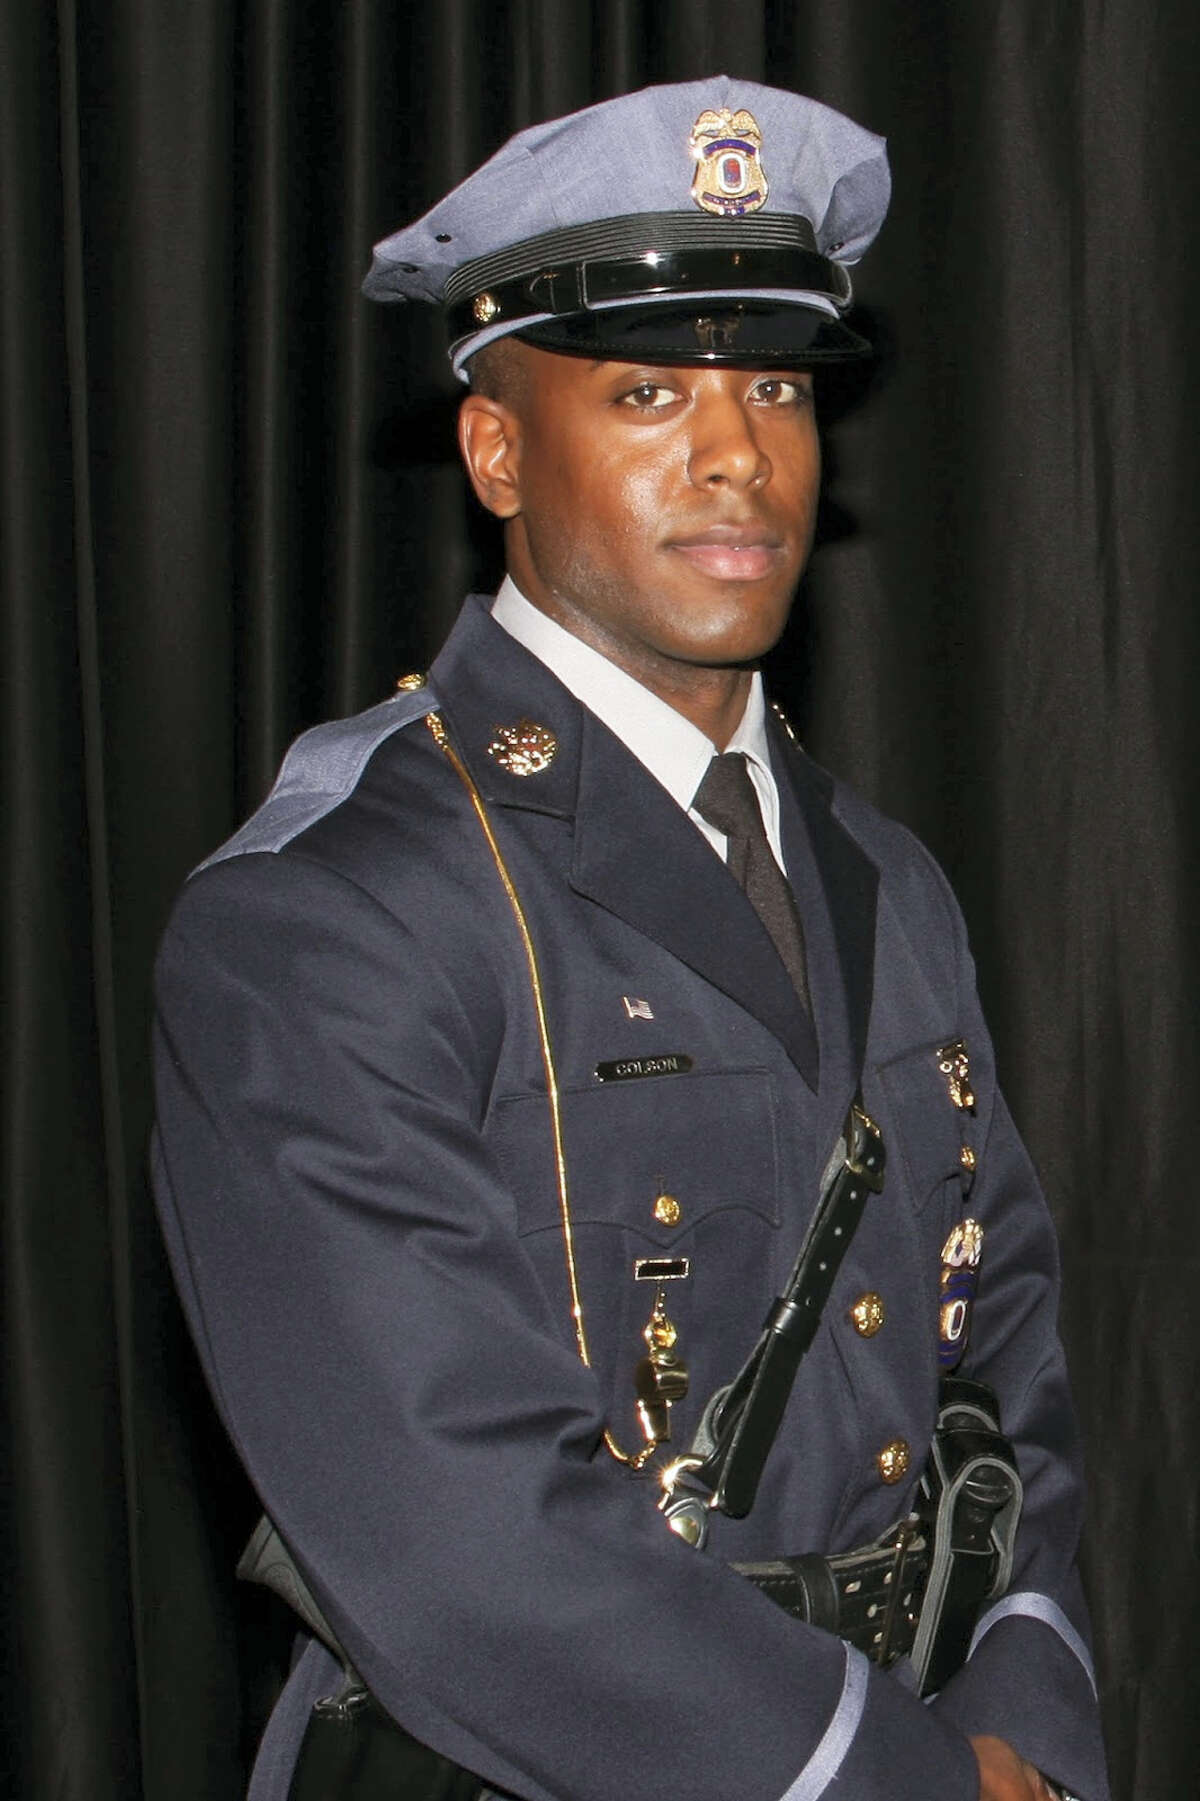 This undated photo provided by the Prince George's County Police Department shows officer Jacai Colson, a 4-year veteran of the Maryland county's police force. A gunman fired outside a Maryland police station on Sunday, March 13, 2016, prompting a gun battle that killed Colson and wounded the suspect, authorities said.